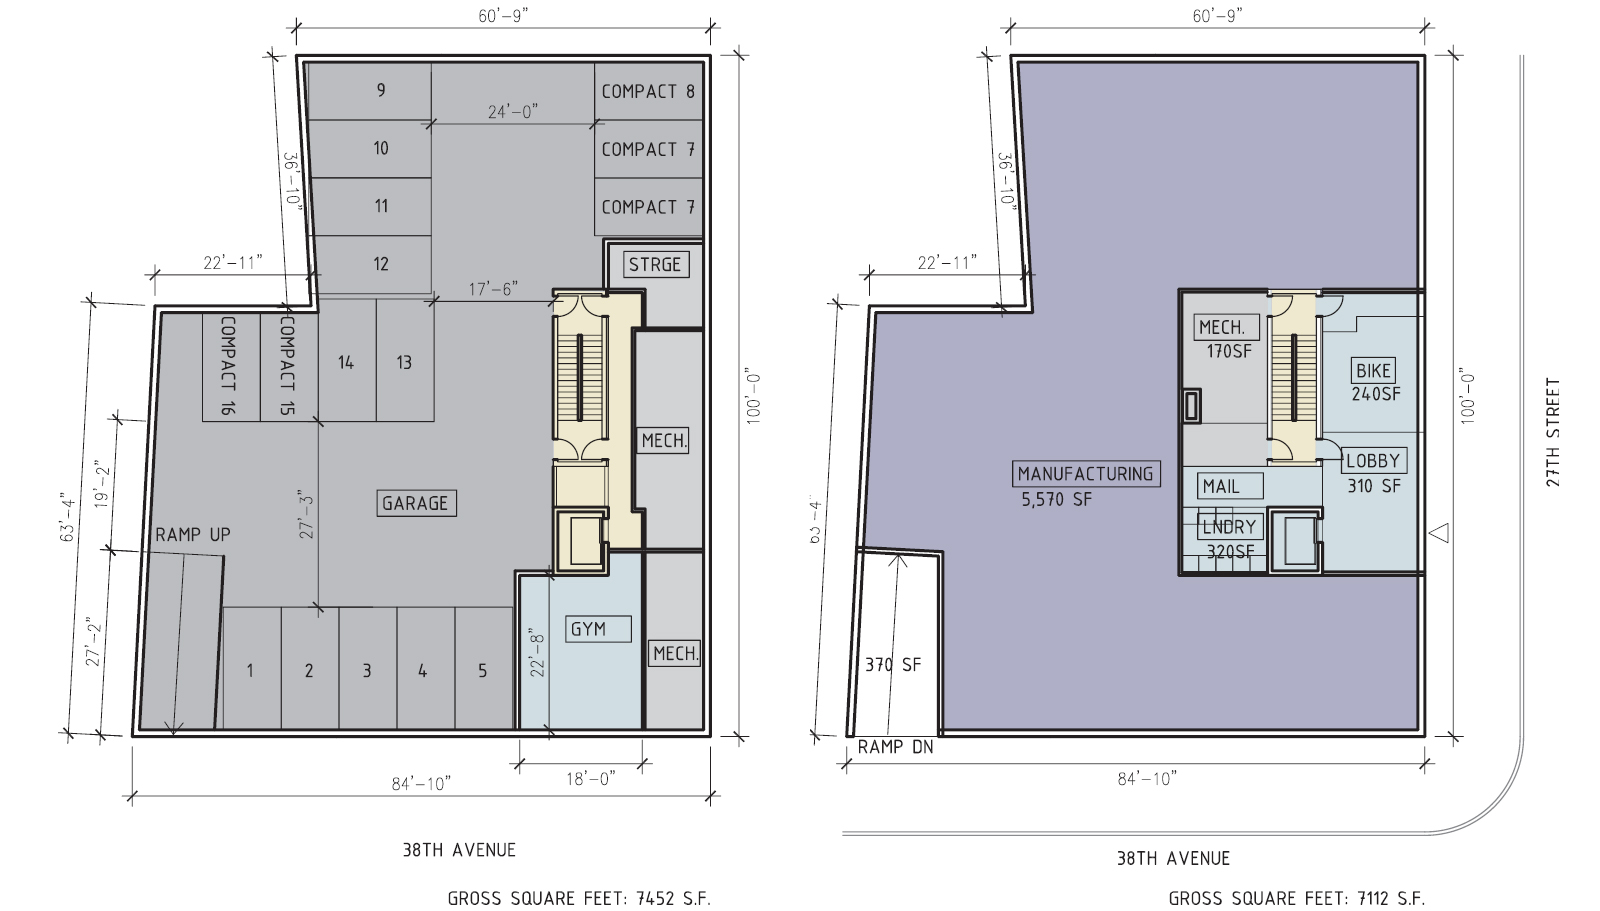 25-11 38th Avenue floor plan – cellar (left) and ground floor (right). Drawing by RSVP Studio, dated November 2013, publicly available via the Remedial Investigation Report.